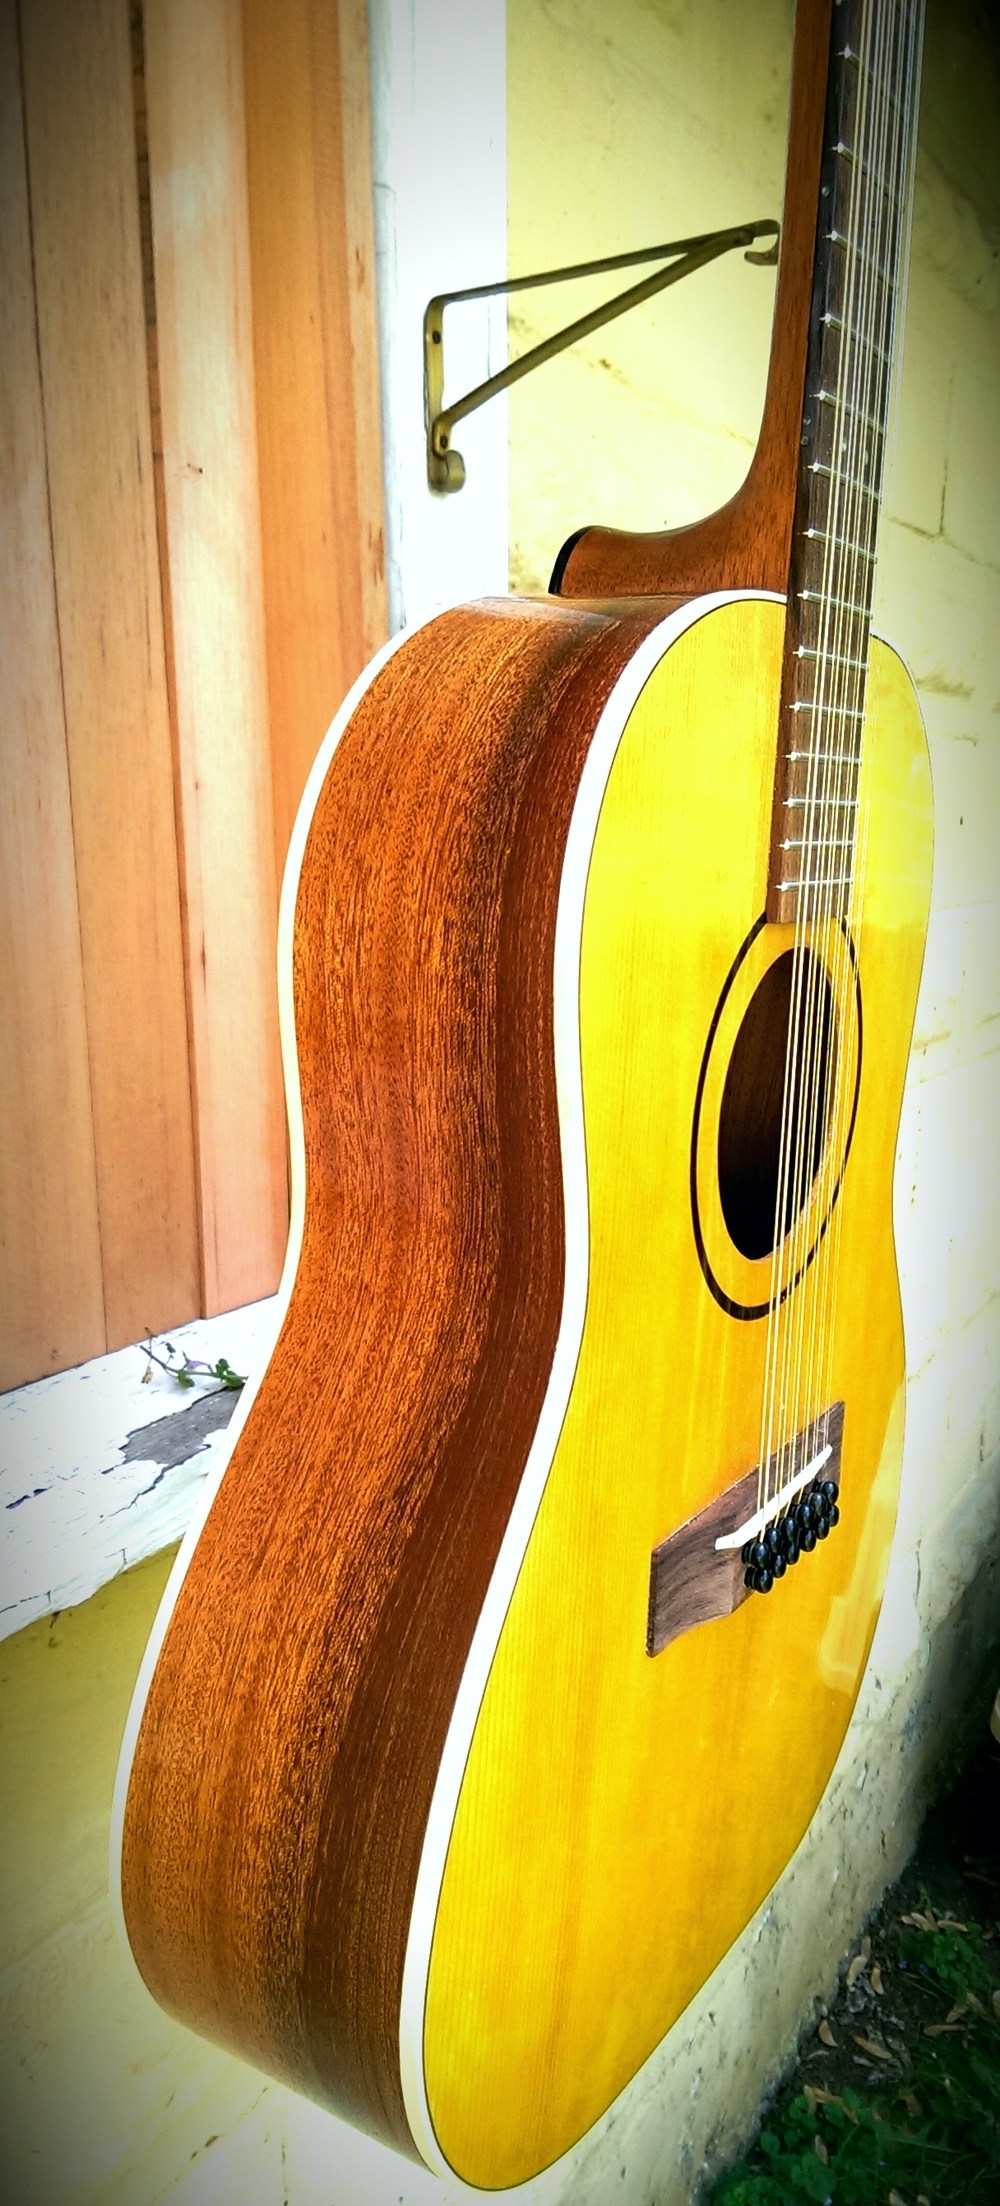 Two-tone Mahogany, Natural. Aged Toner Top, Sitka Spruce